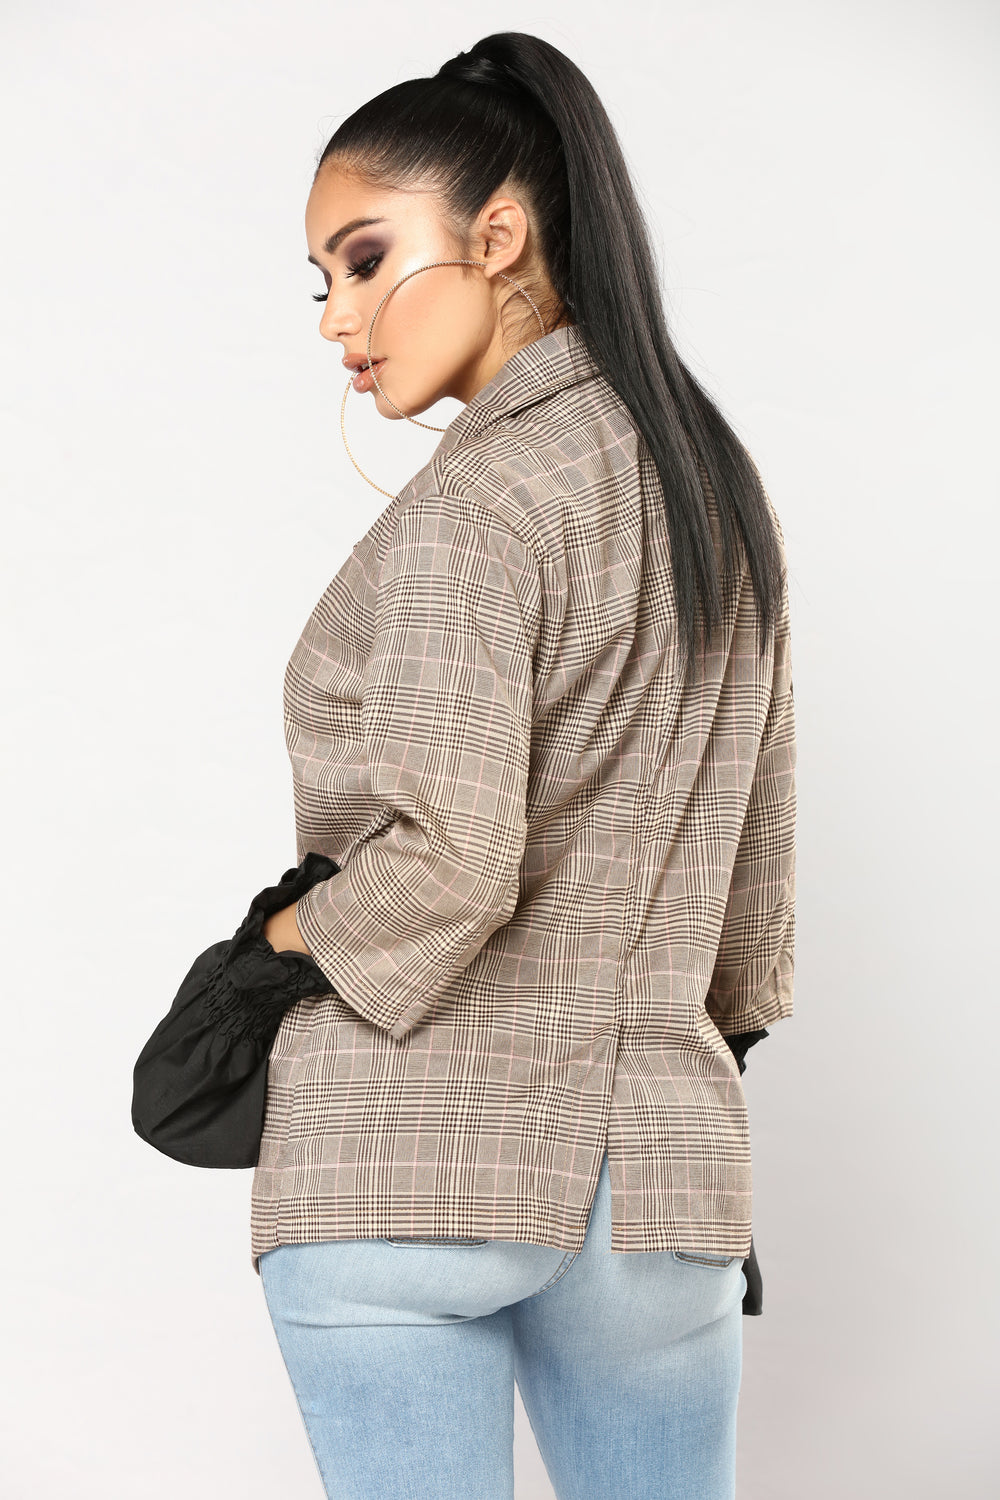 20 Questions Plaid Jacket - Brown